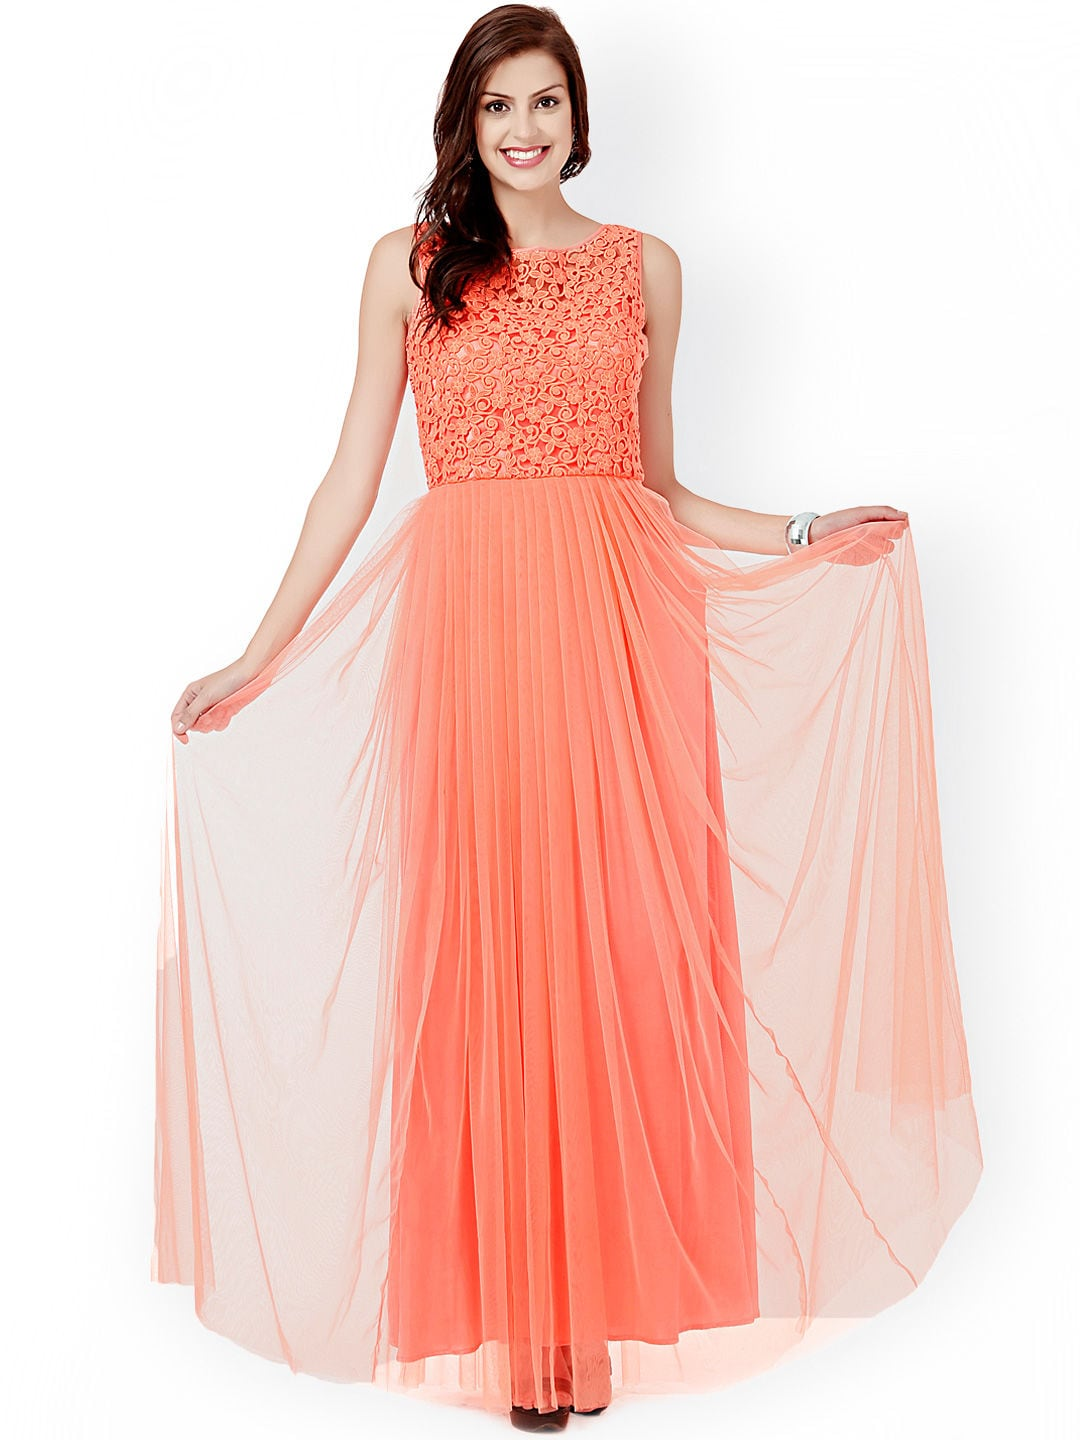 Buy Party Maxi Dresses Online India - Eligent Prom Dresses